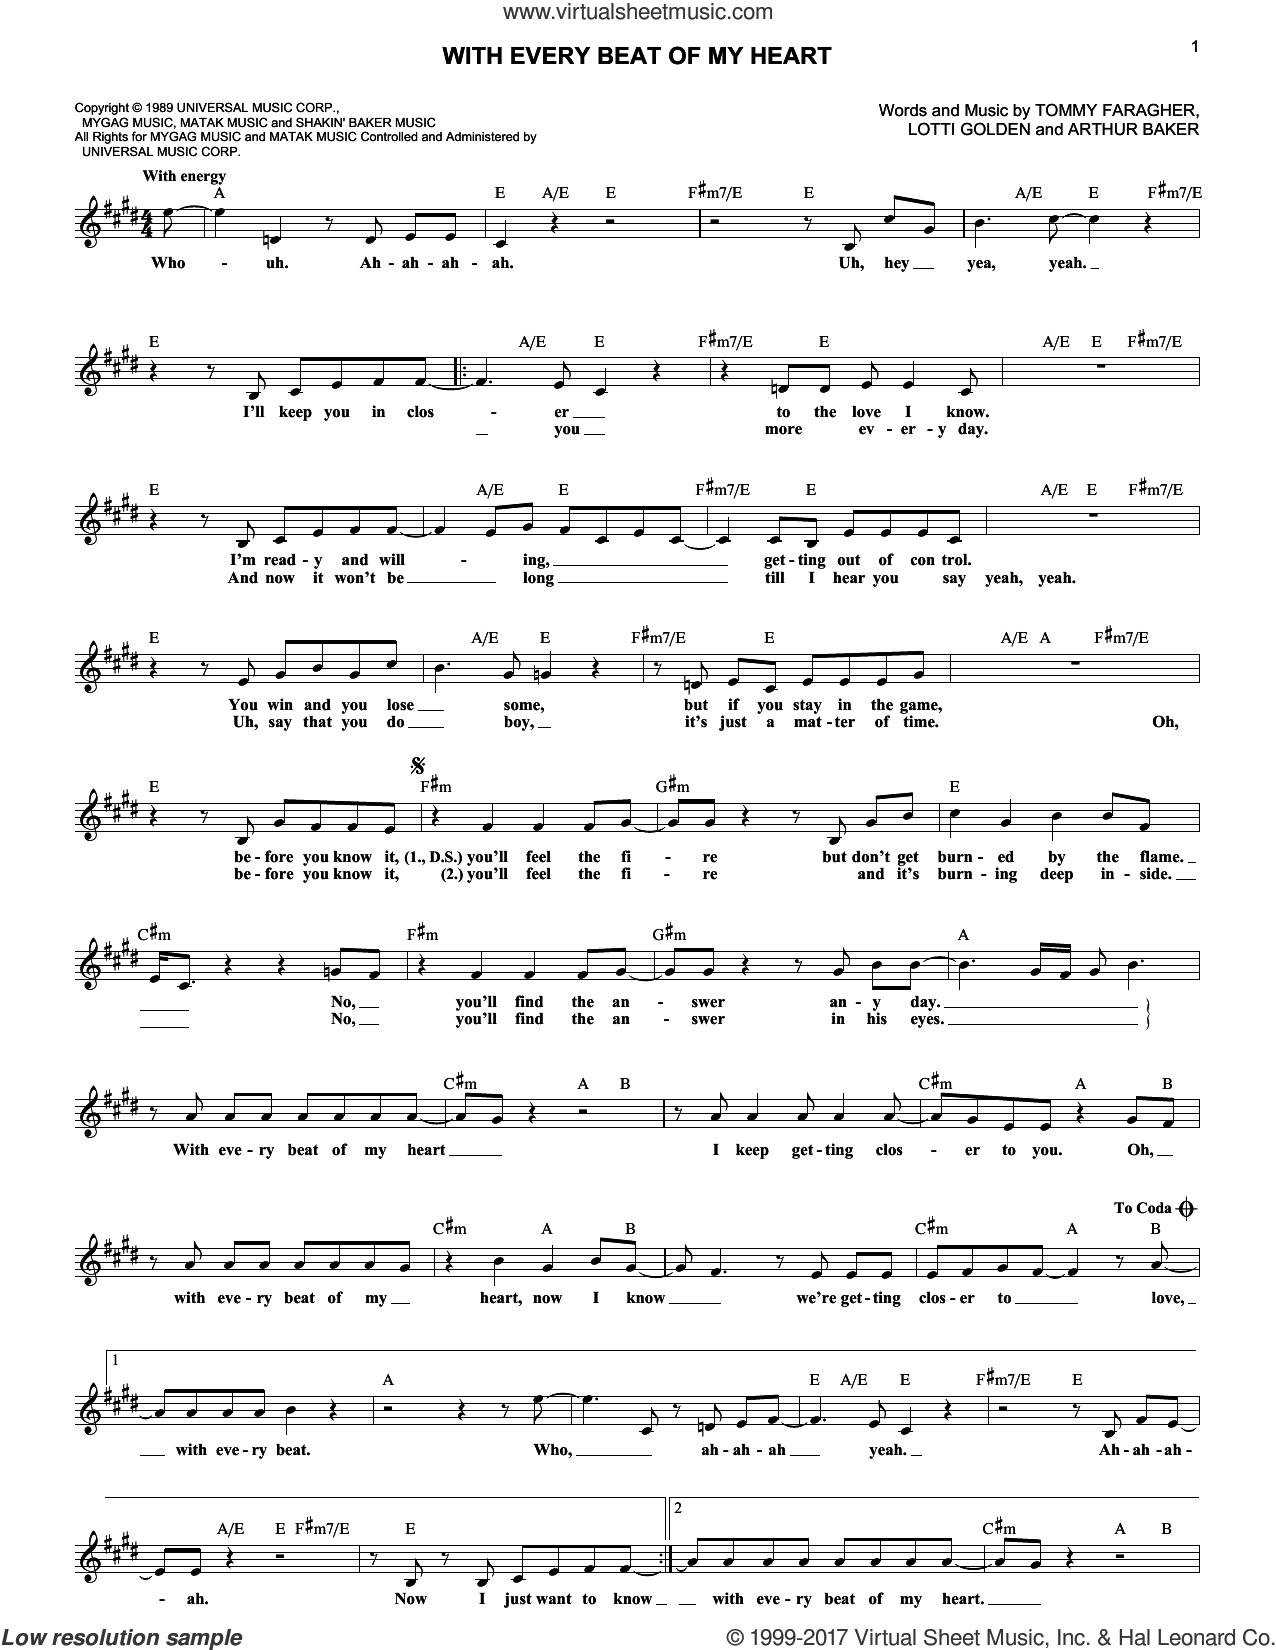 With Every Beat Of My Heart sheet music for voice and other instruments (fake book) by Taylor Dane, Arthur Baker, Lotti Golden and Tommy Faragher, intermediate skill level